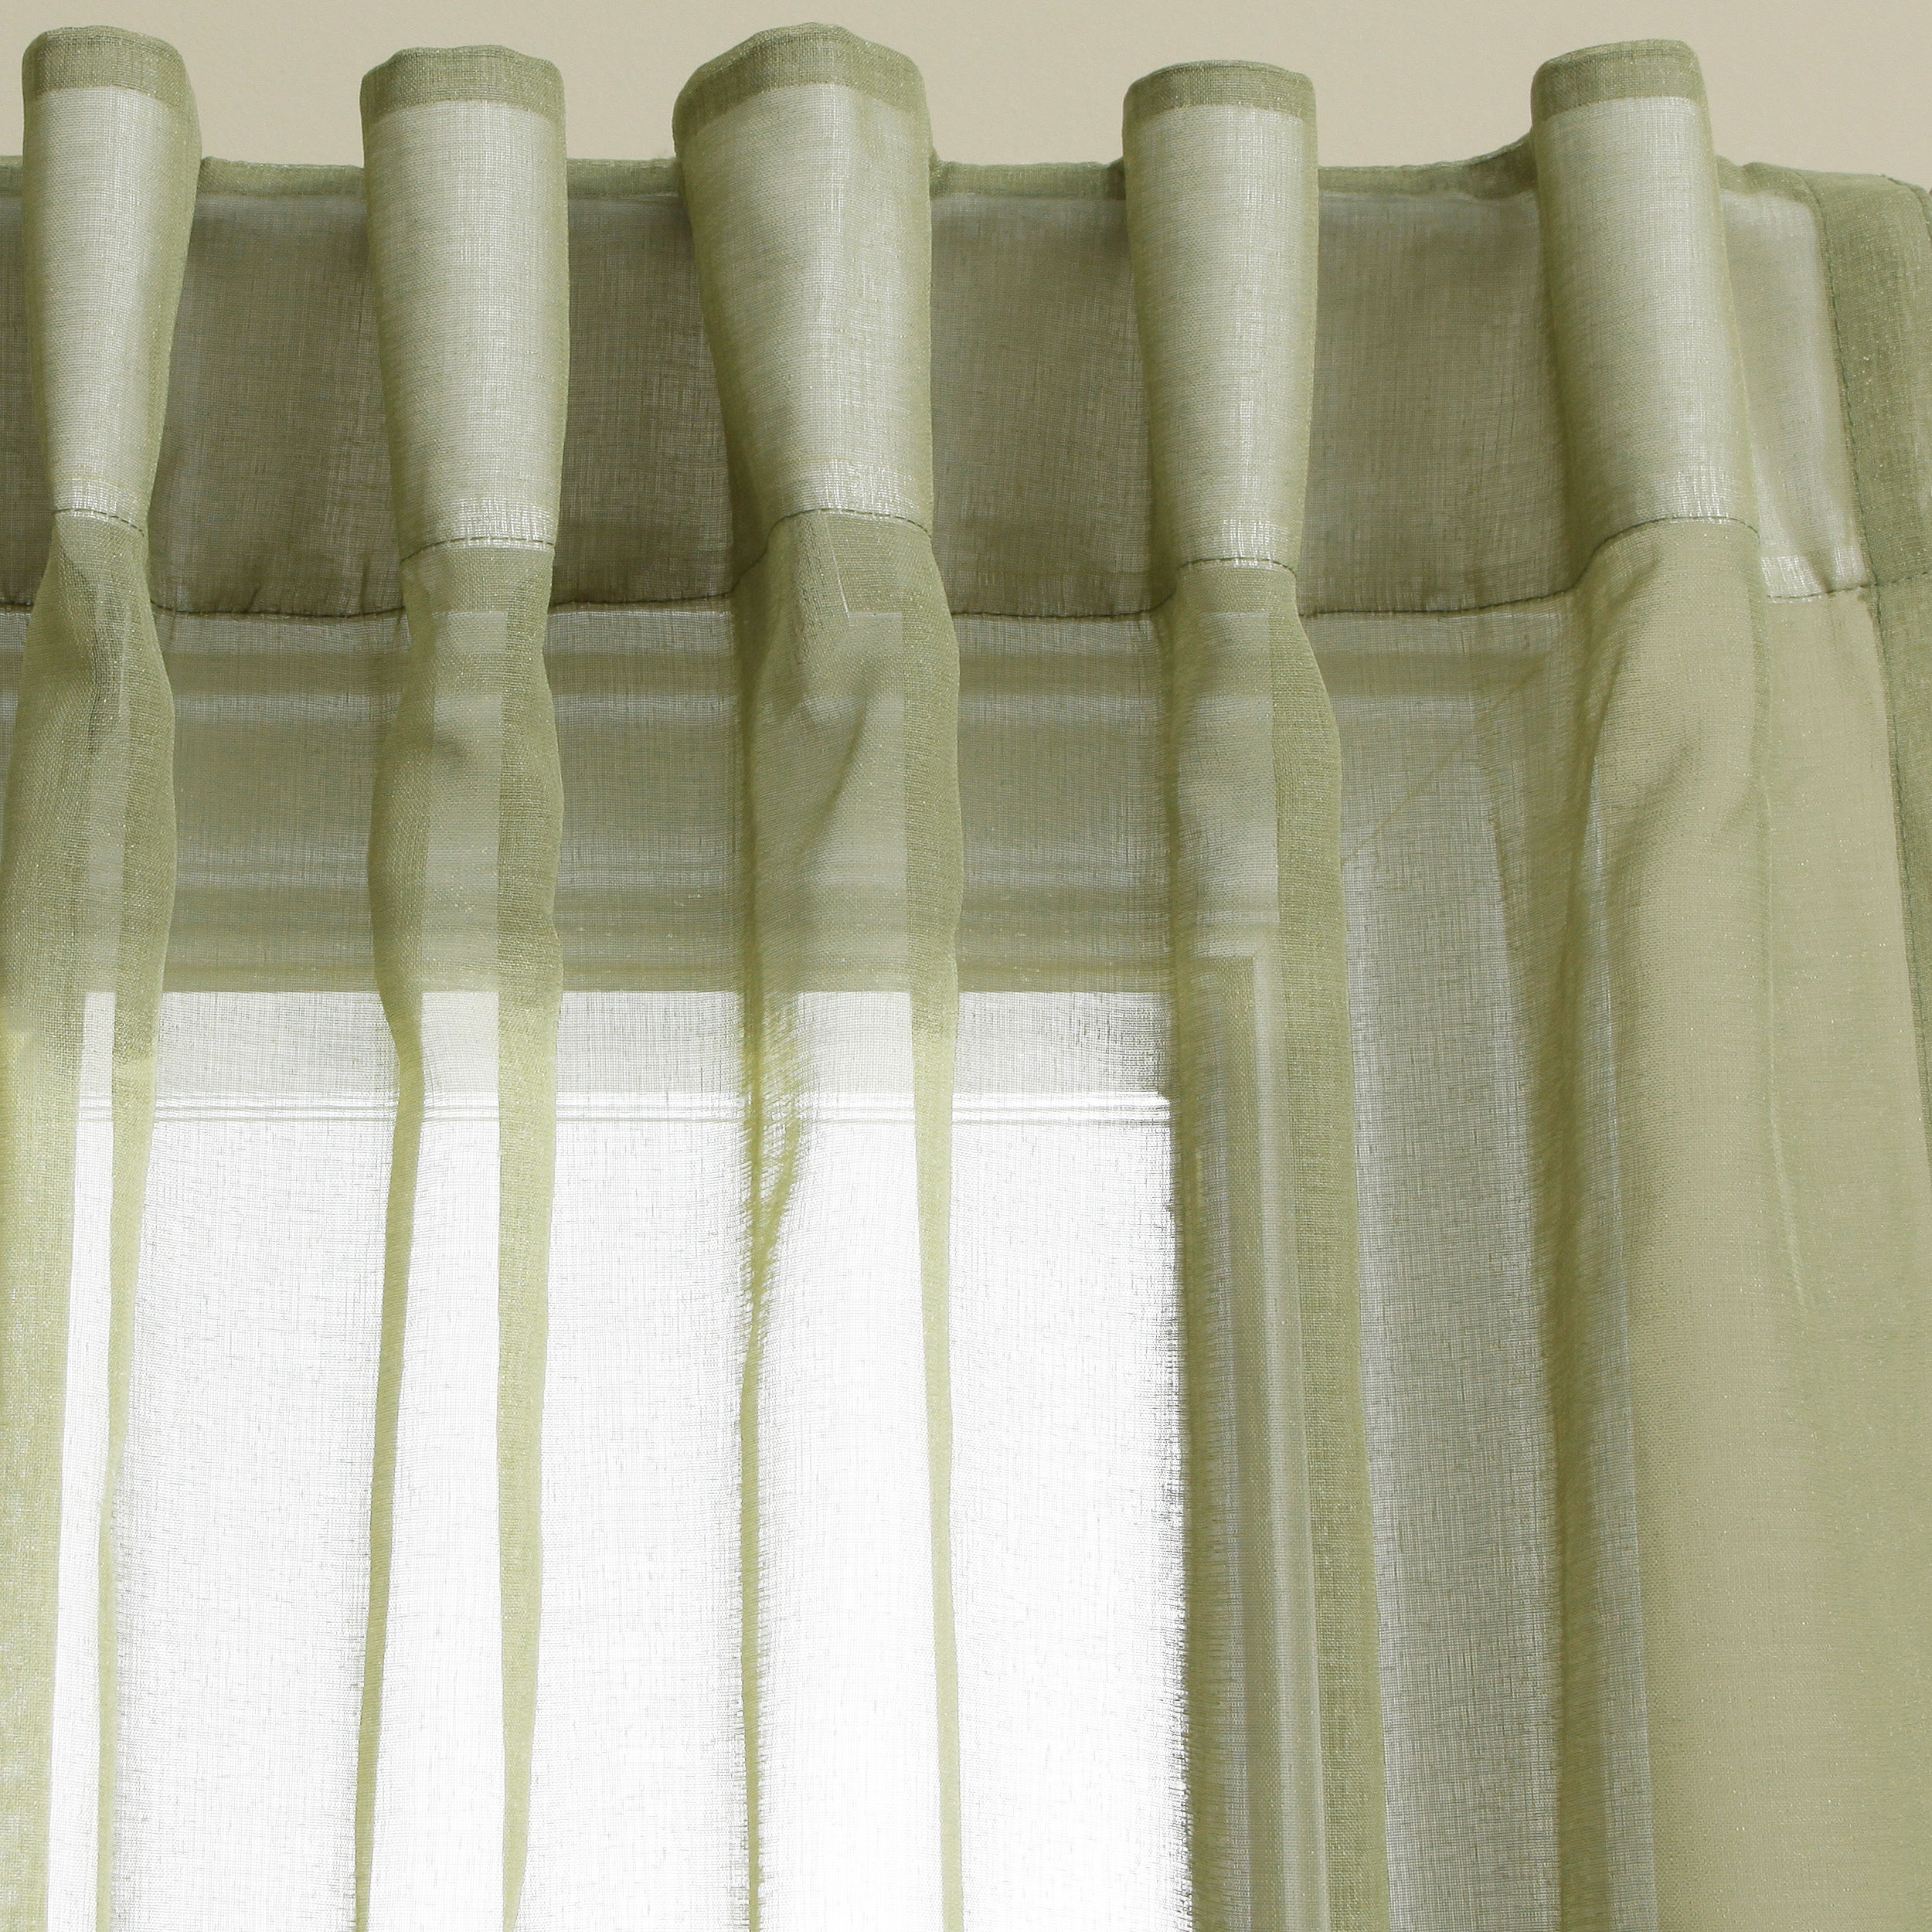 amber do set curtains of xxx market top world bella concealed tab product back drapes gold